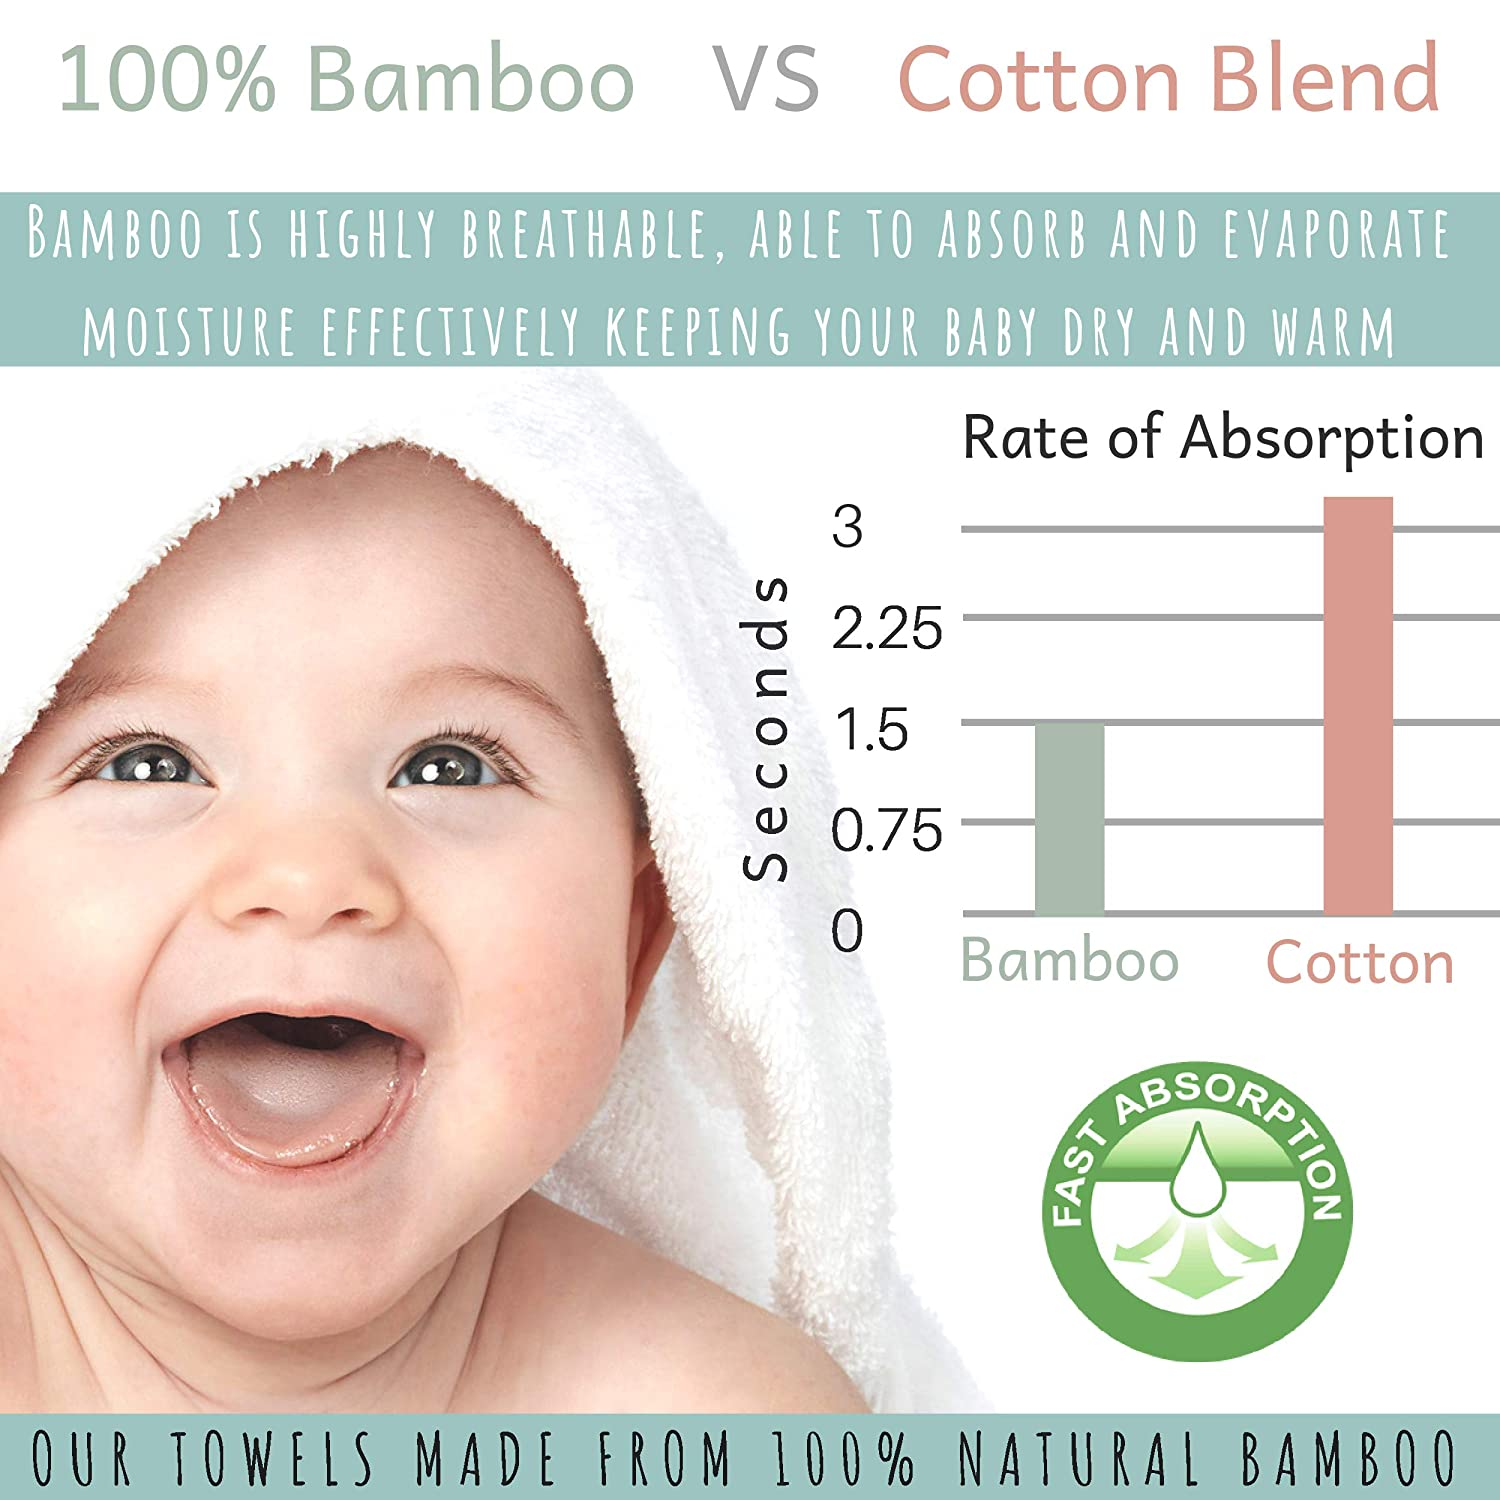 Organic Bamboo Baby Hooded Towel   Ultra Soft and Super Absorbent Toddler Hooded Bath Towel with Cute Lamb Face Design   Great Infant/Newborn Shower Present for Boy or Girl